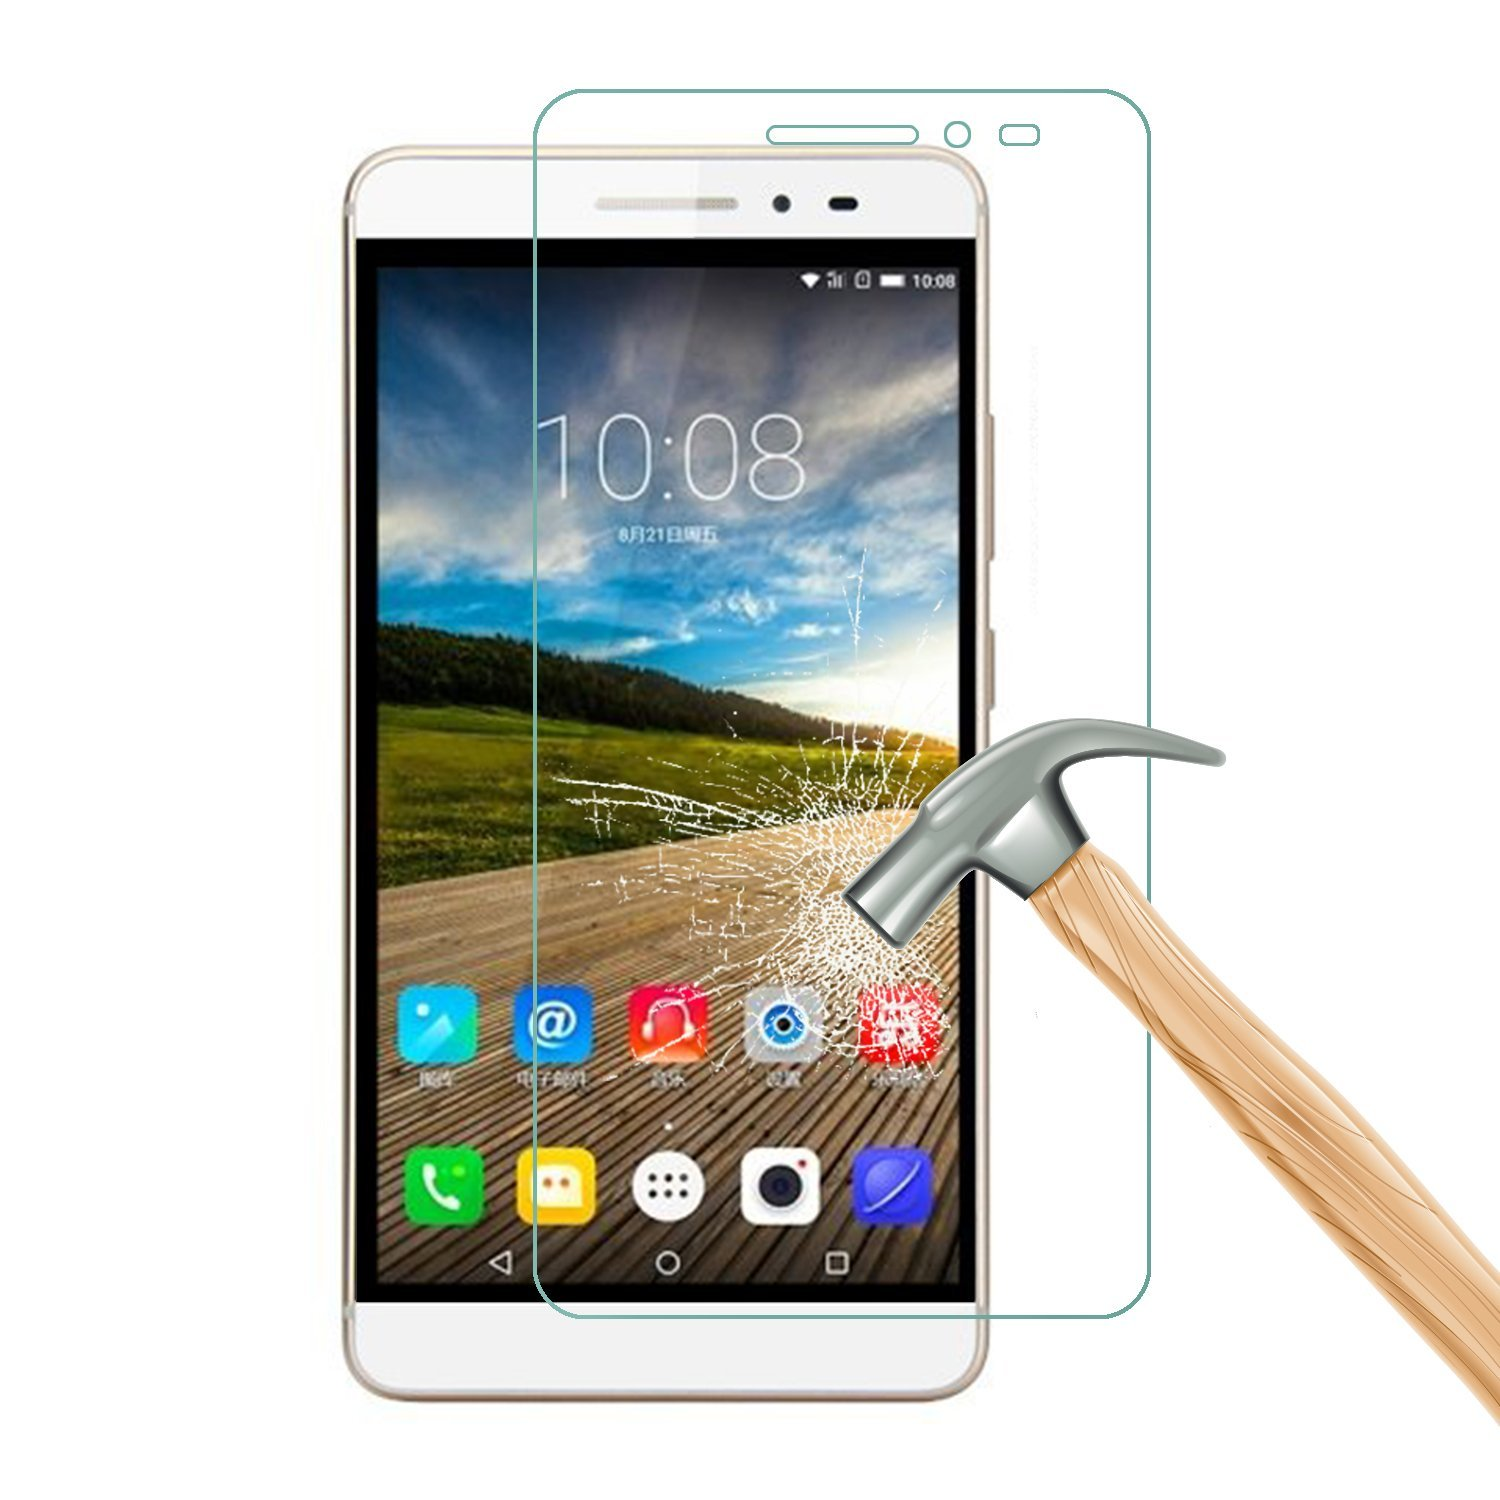 0.3mm Tempered Glass For Lenovo a536 A5000 A6000 A6010 A7000 A2010 S90  k3 note p70 vibe p1m K5 case cover Screen Protector